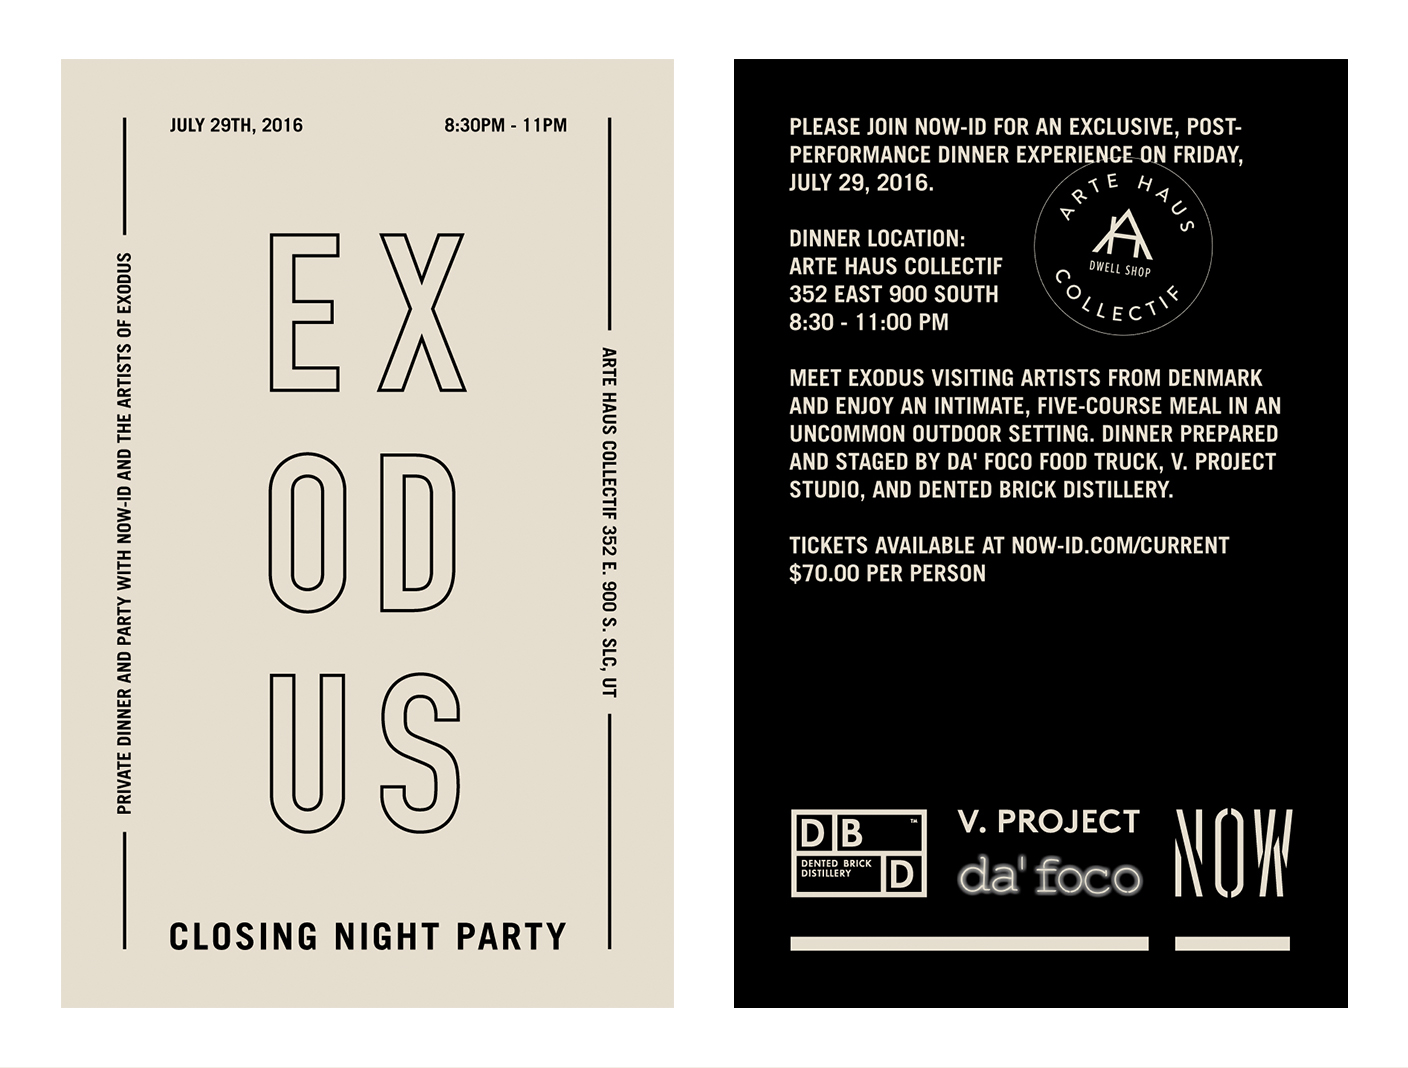 Arte Haus Collectif We Are Having An Exodus Dinner Party On July 29th Where You Get